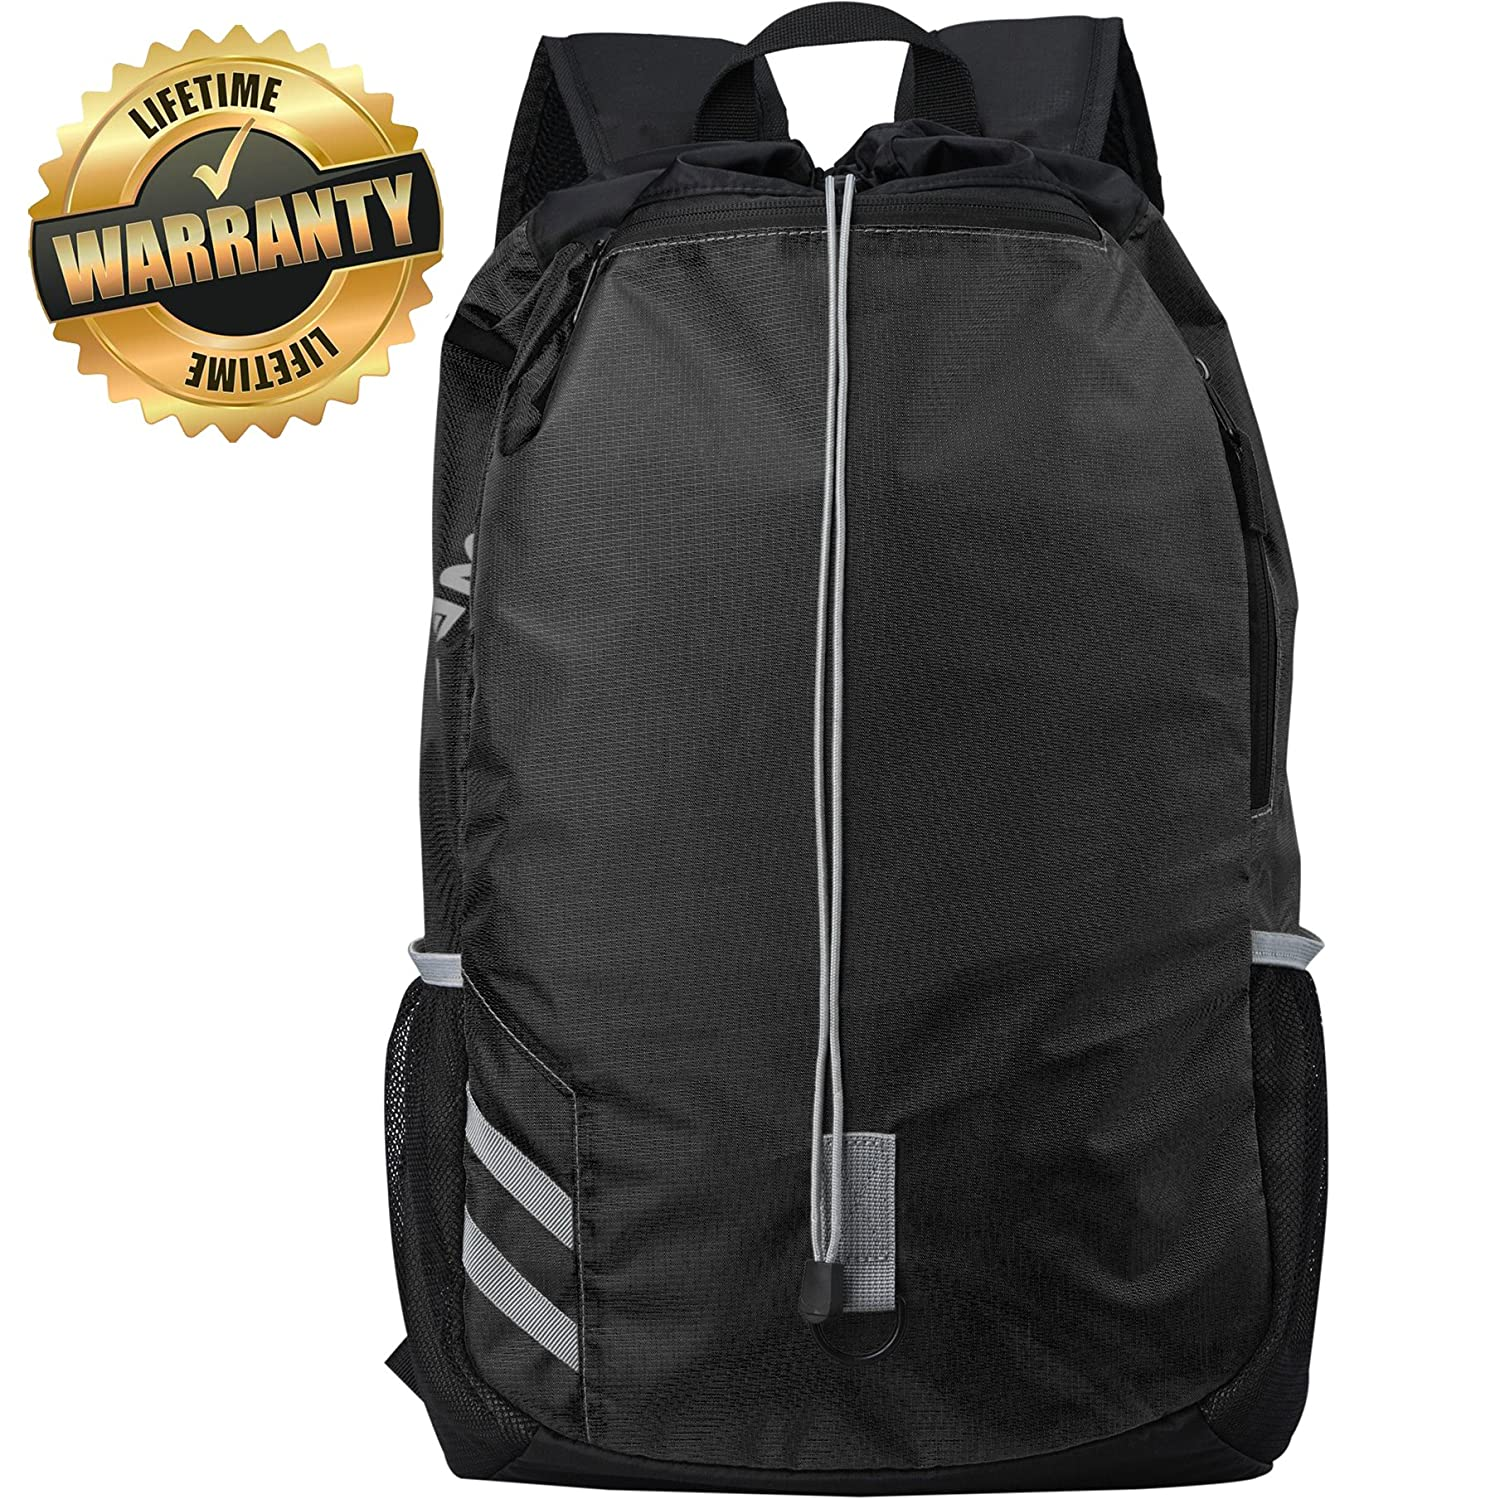 #1 Top Recommended Backpack - Lightweight Drawsting Backpack - Best for Sports, Gym, Travel, Hiking&School WEWEON